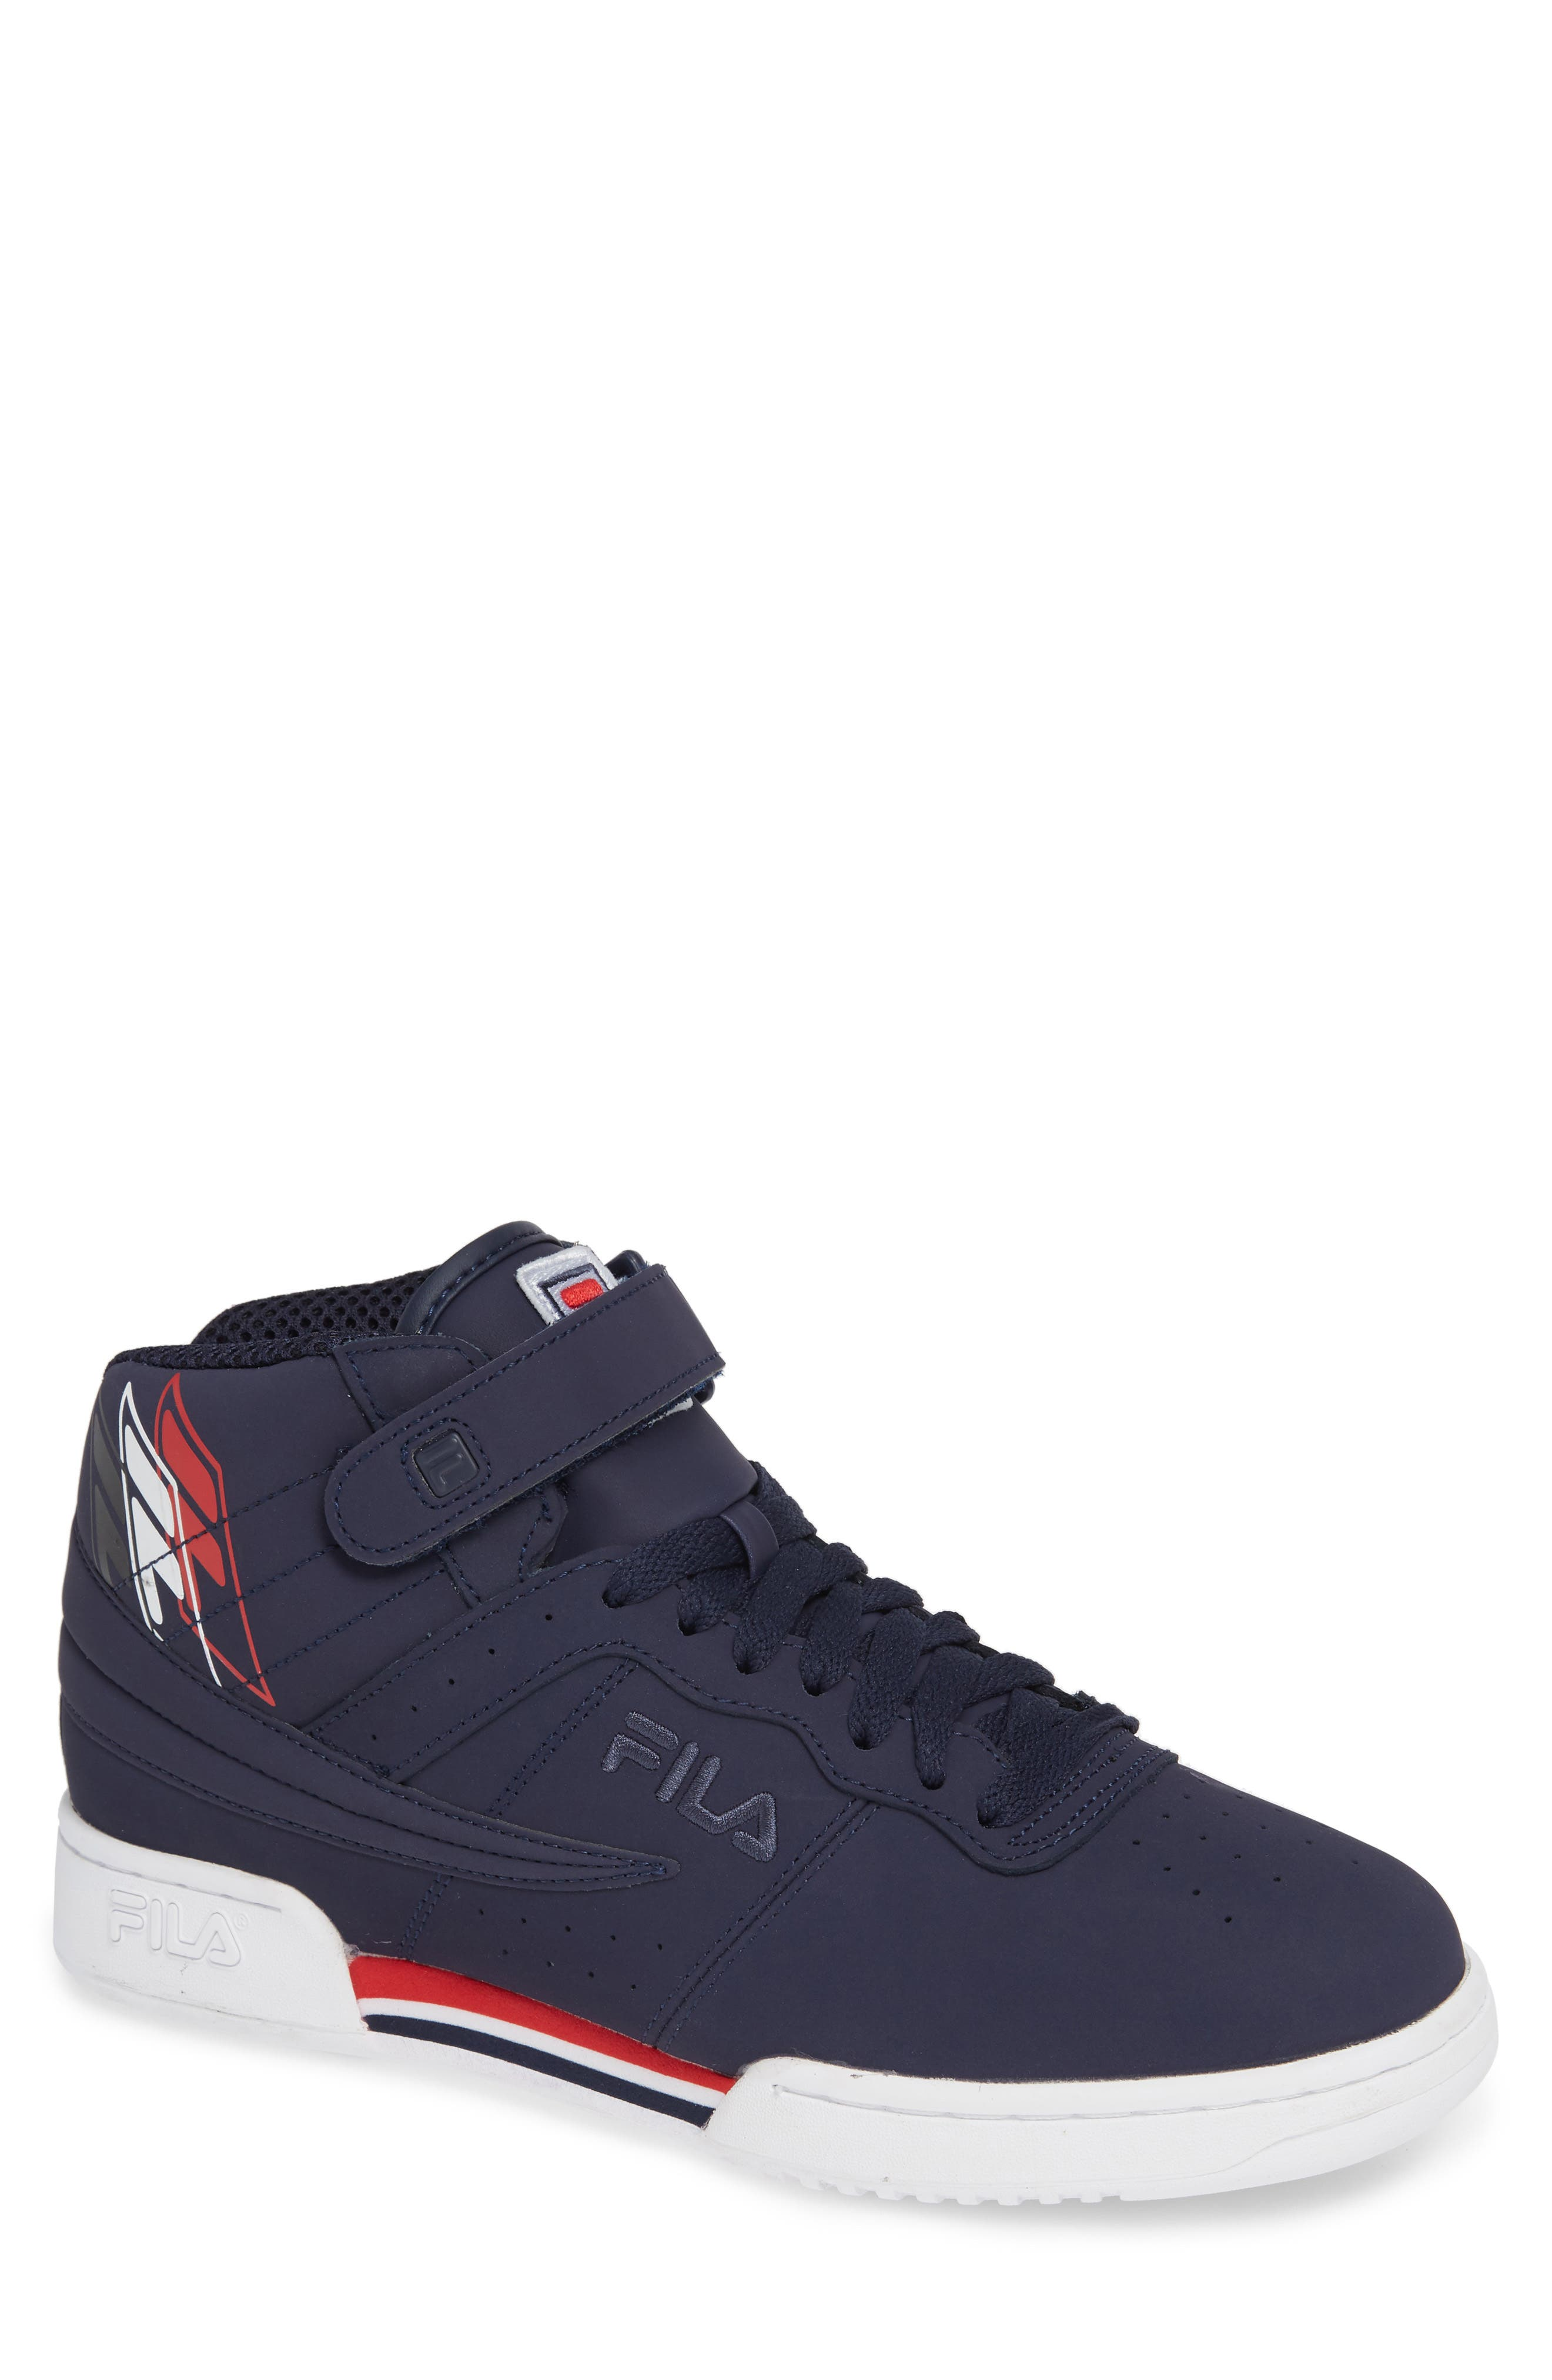 F-13 F-Box Sneaker,                             Main thumbnail 1, color,                             NAVY/ WHITE/ RED